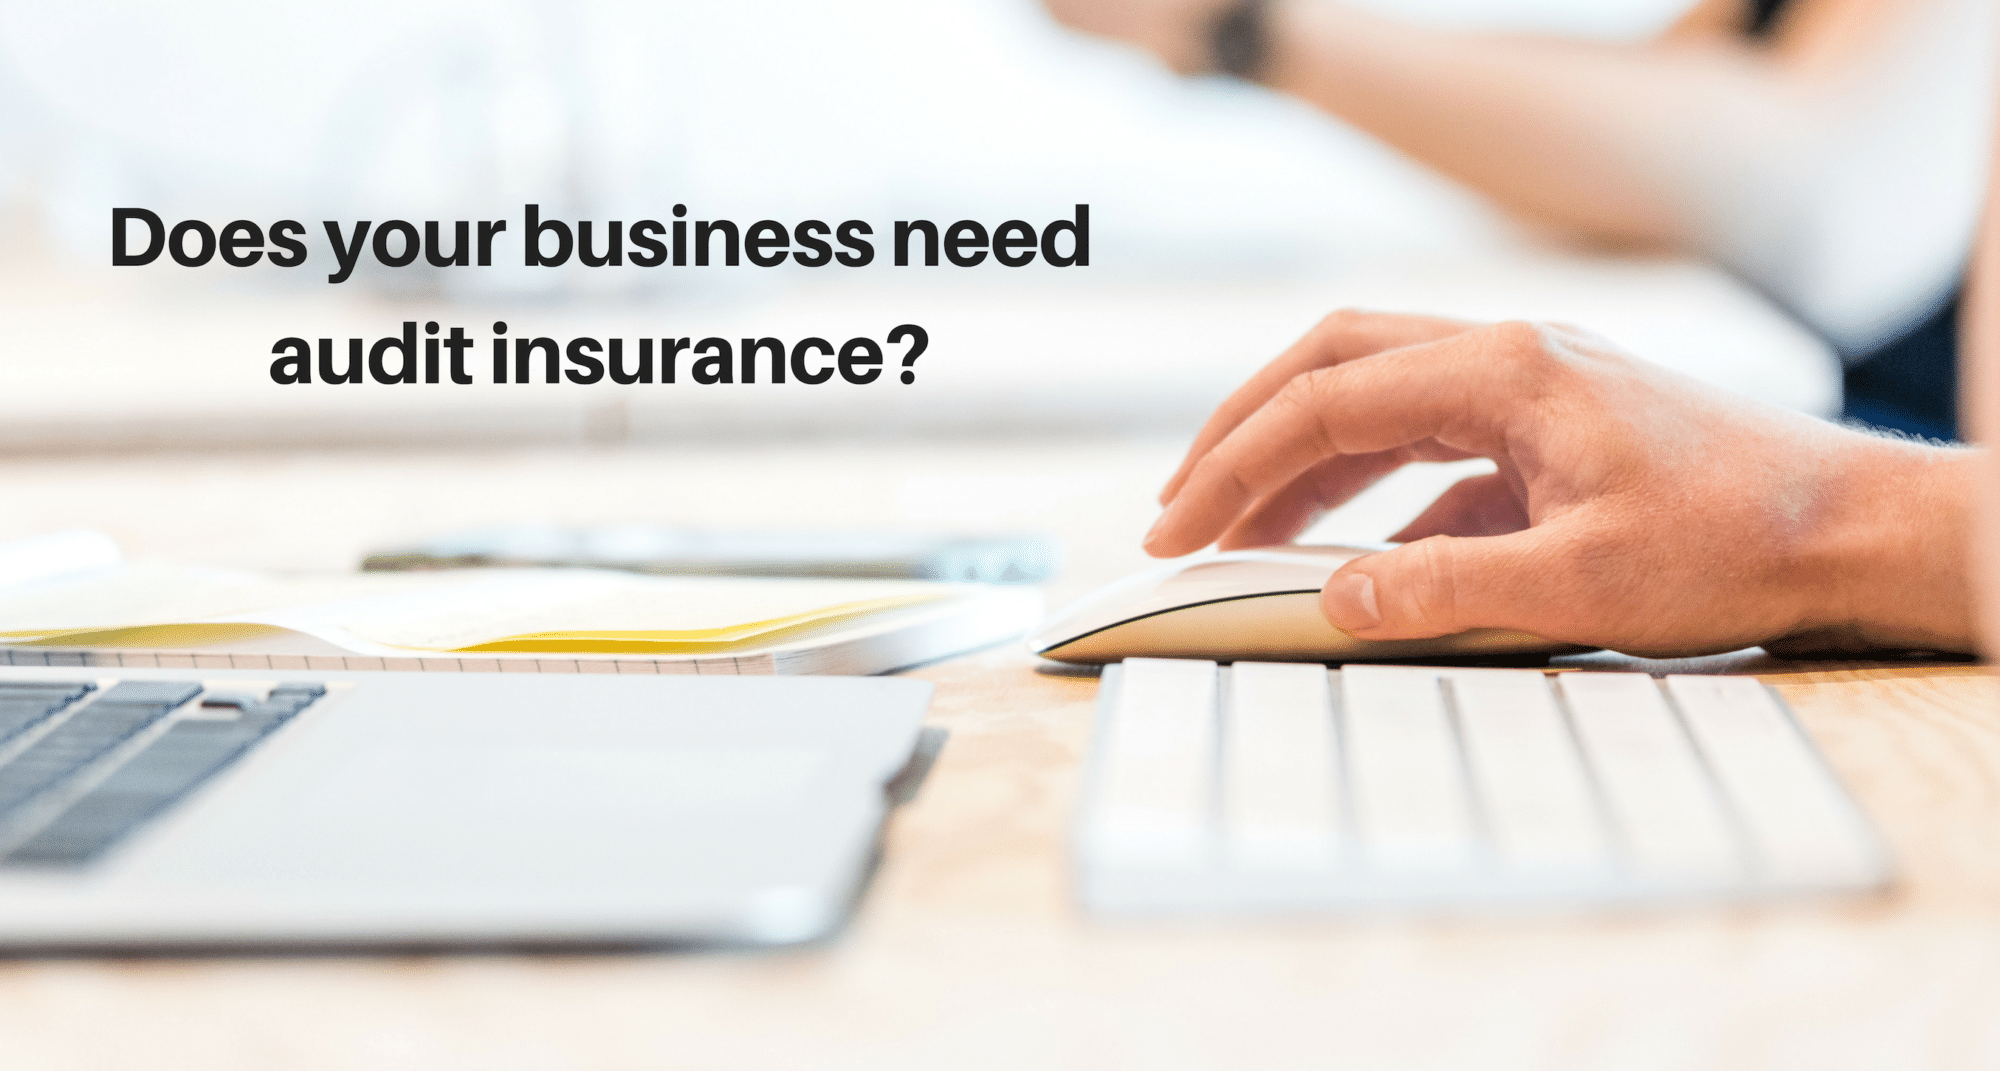 Does your business need audit insurance?